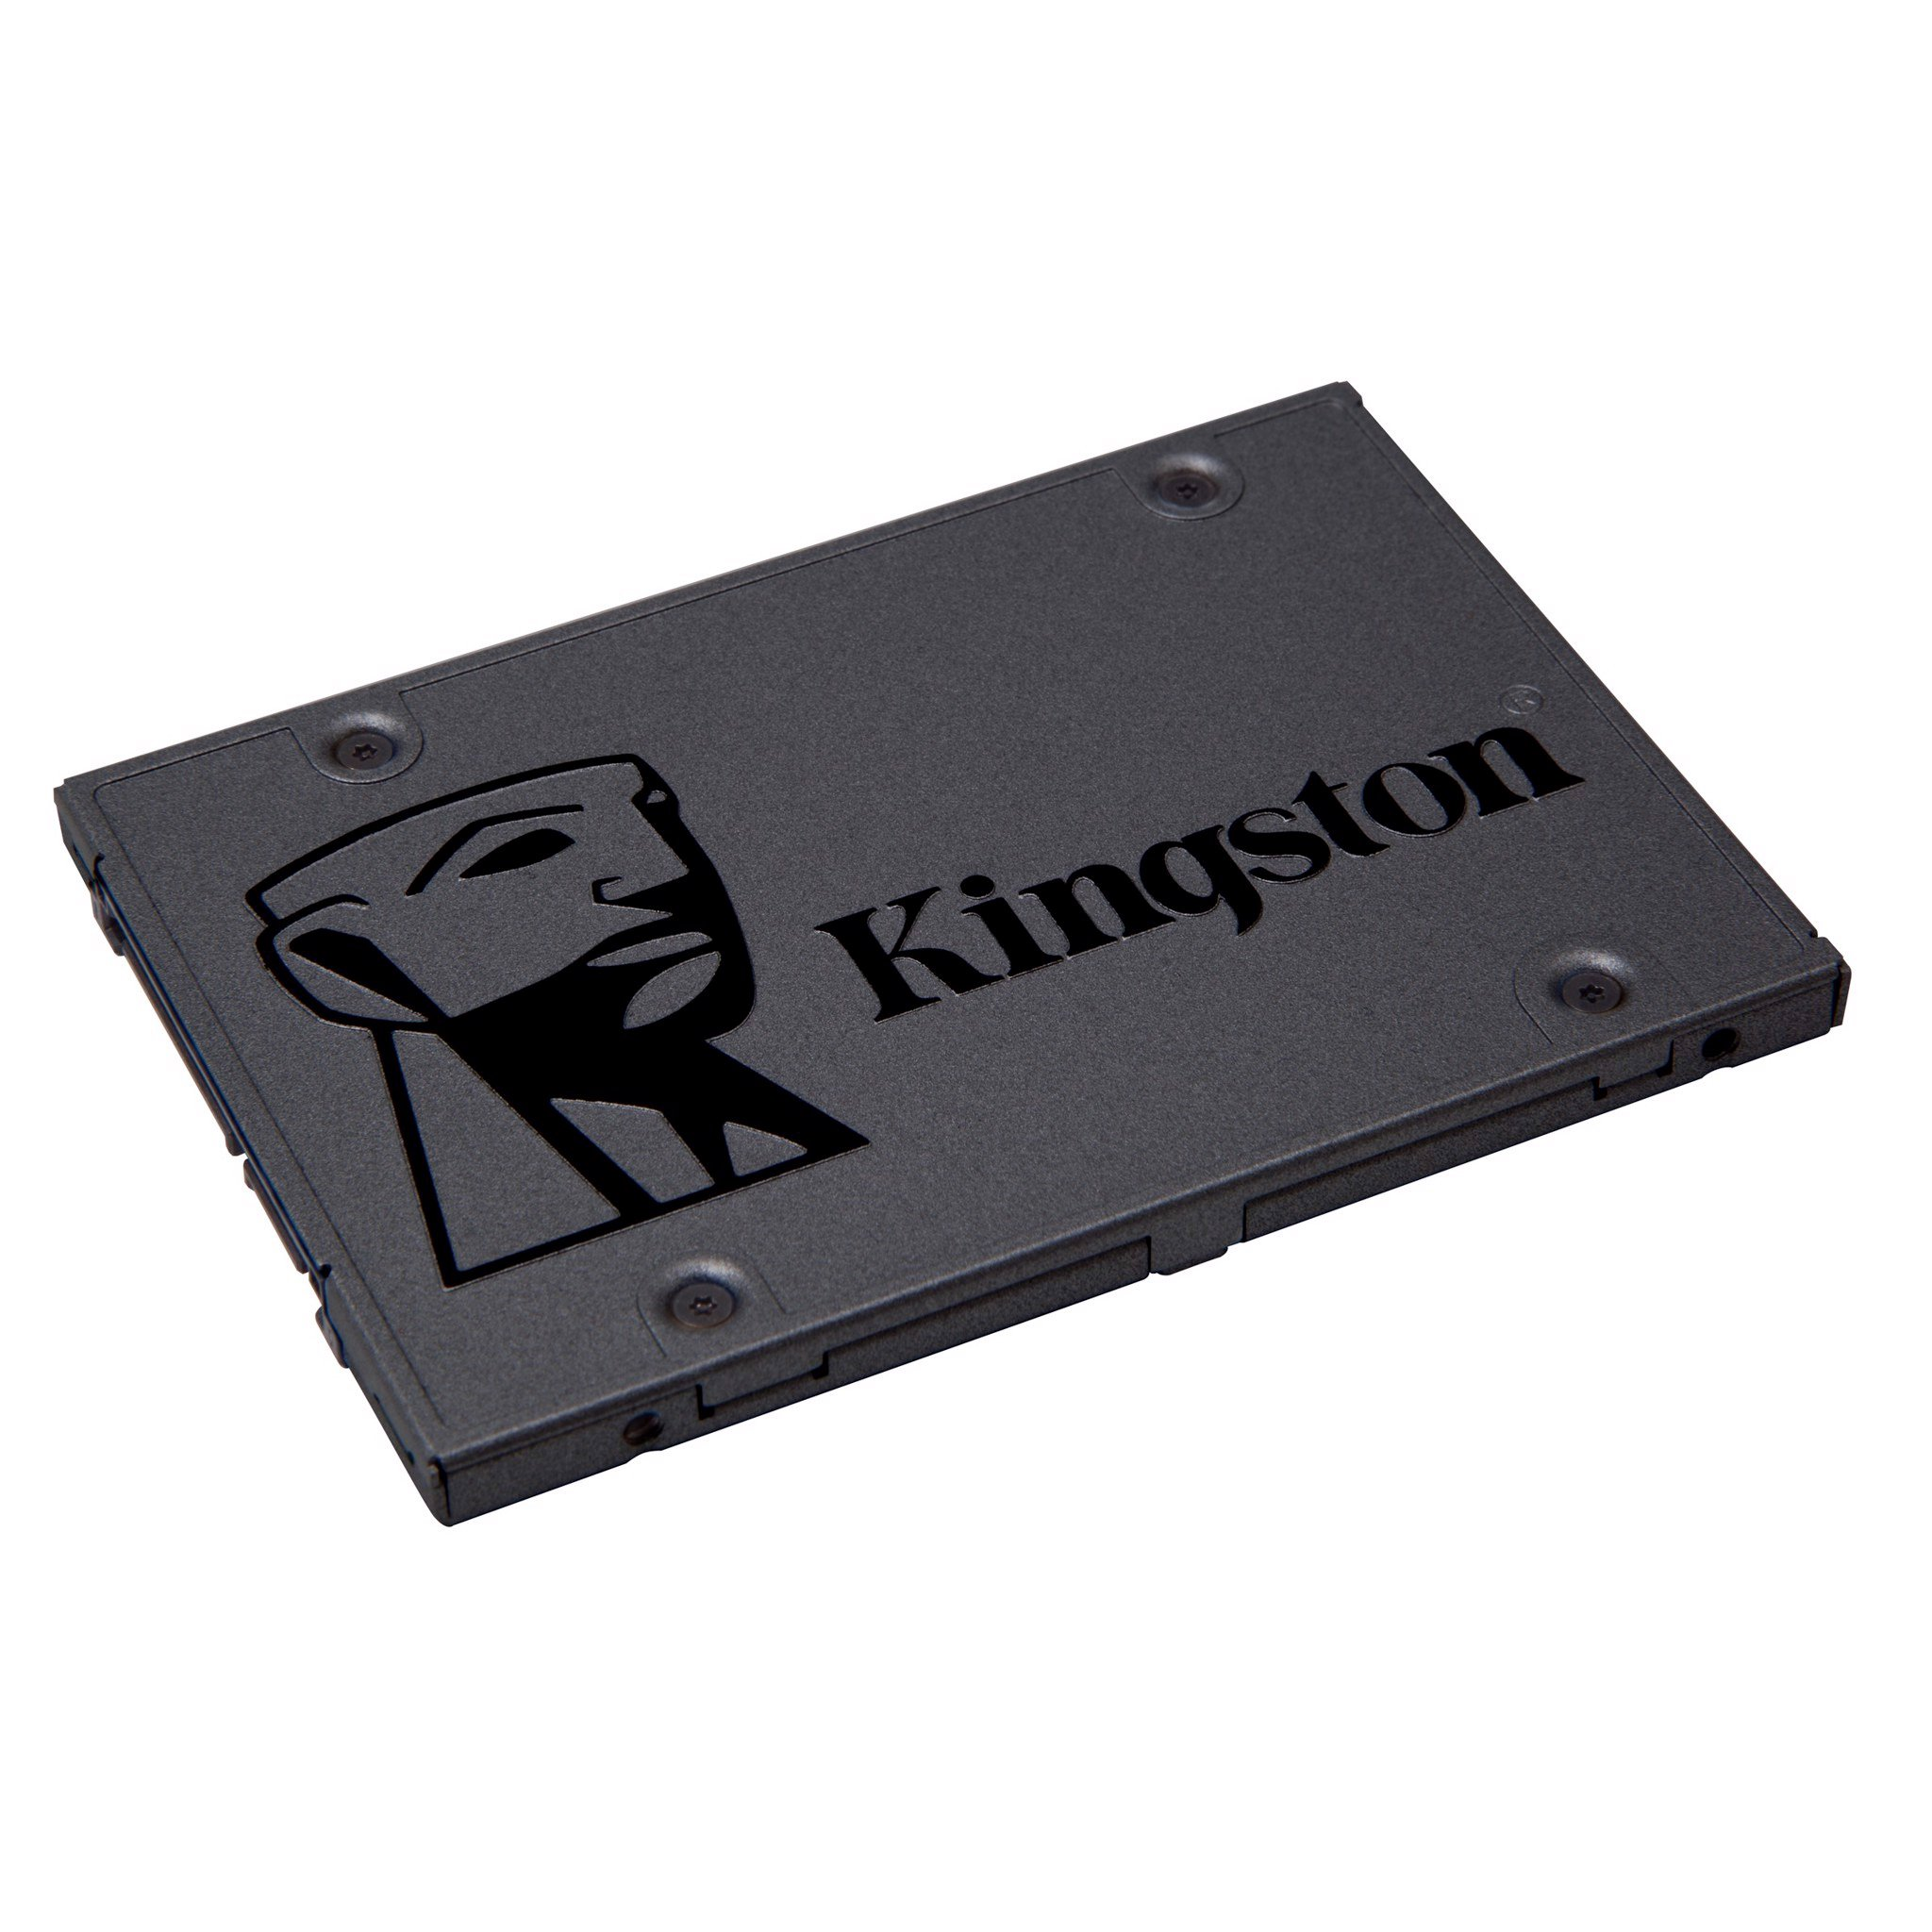 Ổ cứng SSD Kingston SA400 240GB